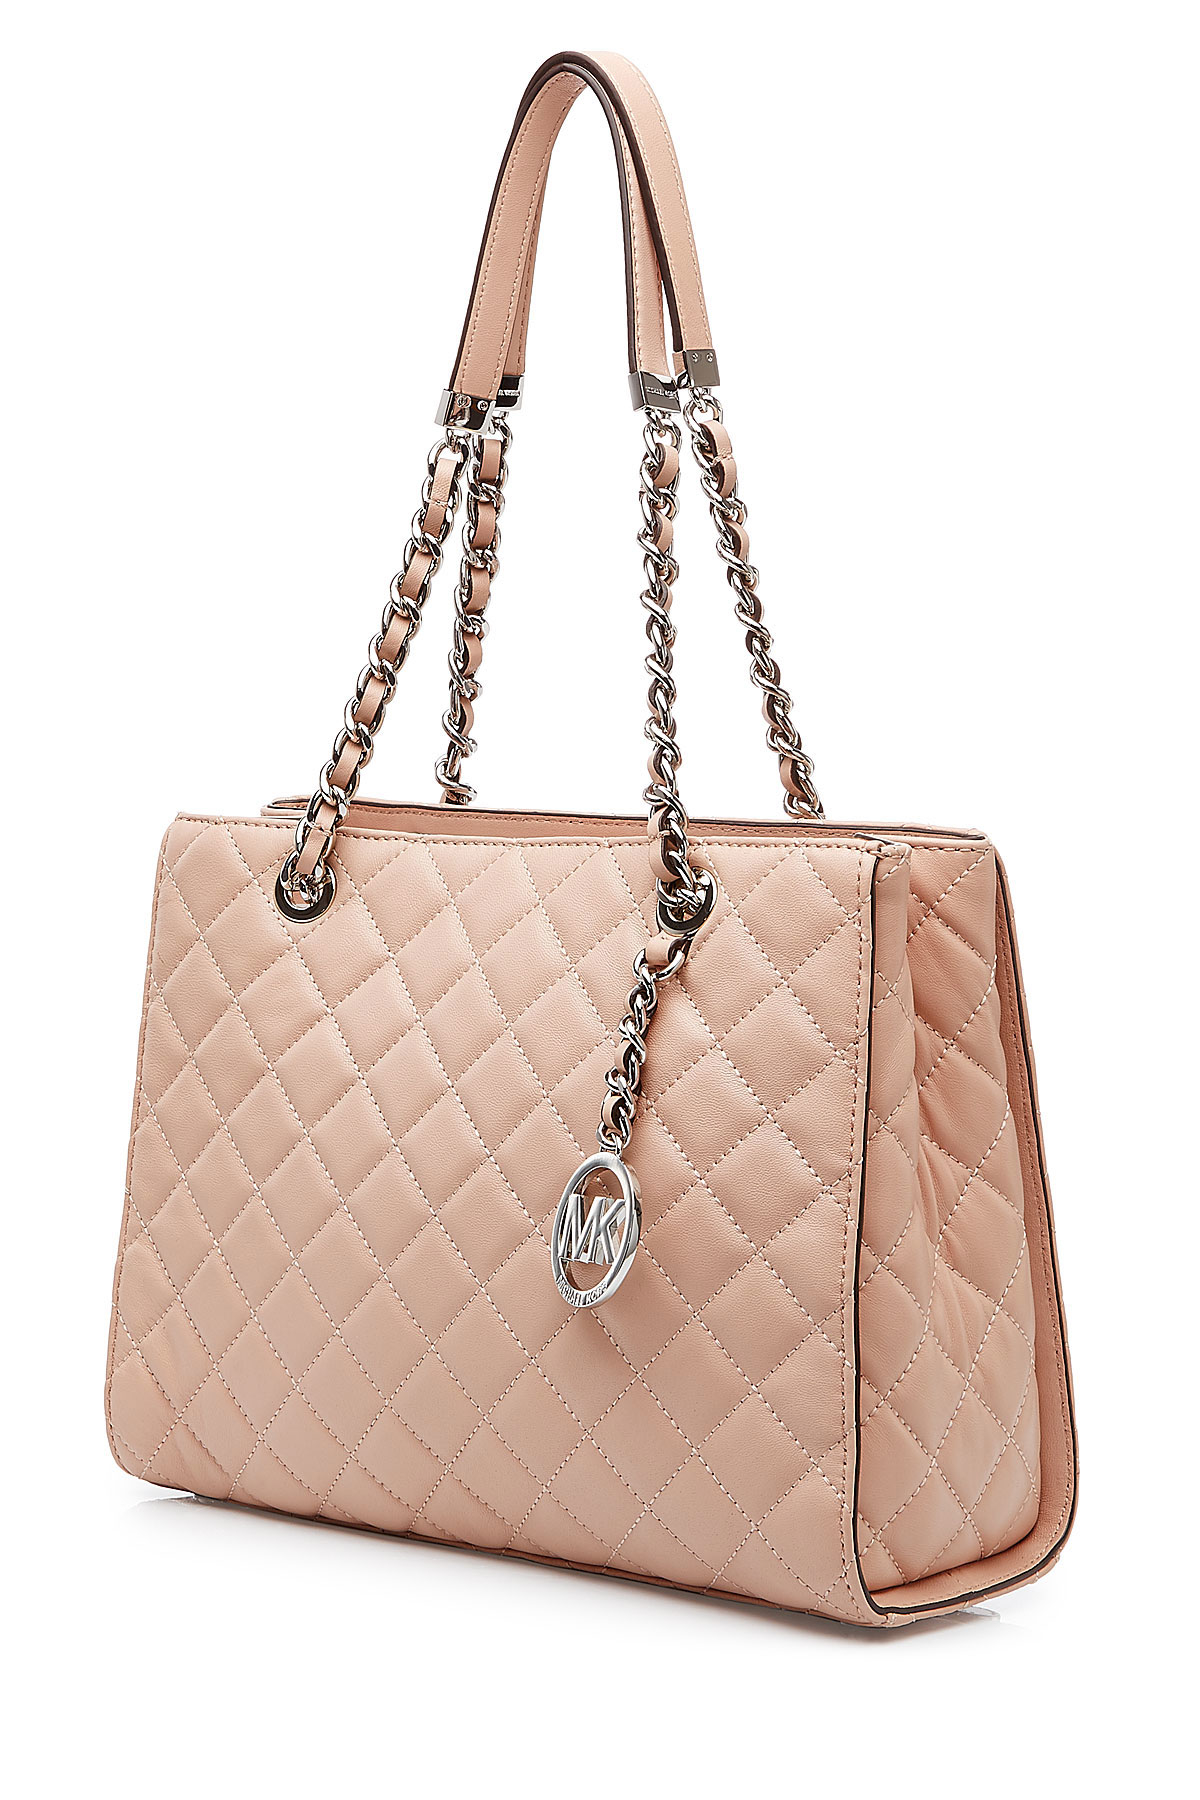 9b5c77e0ae7e Gallery. Previously sold at  STYLEBOP.com · Women s Michael Kors Quilted Bag  ...